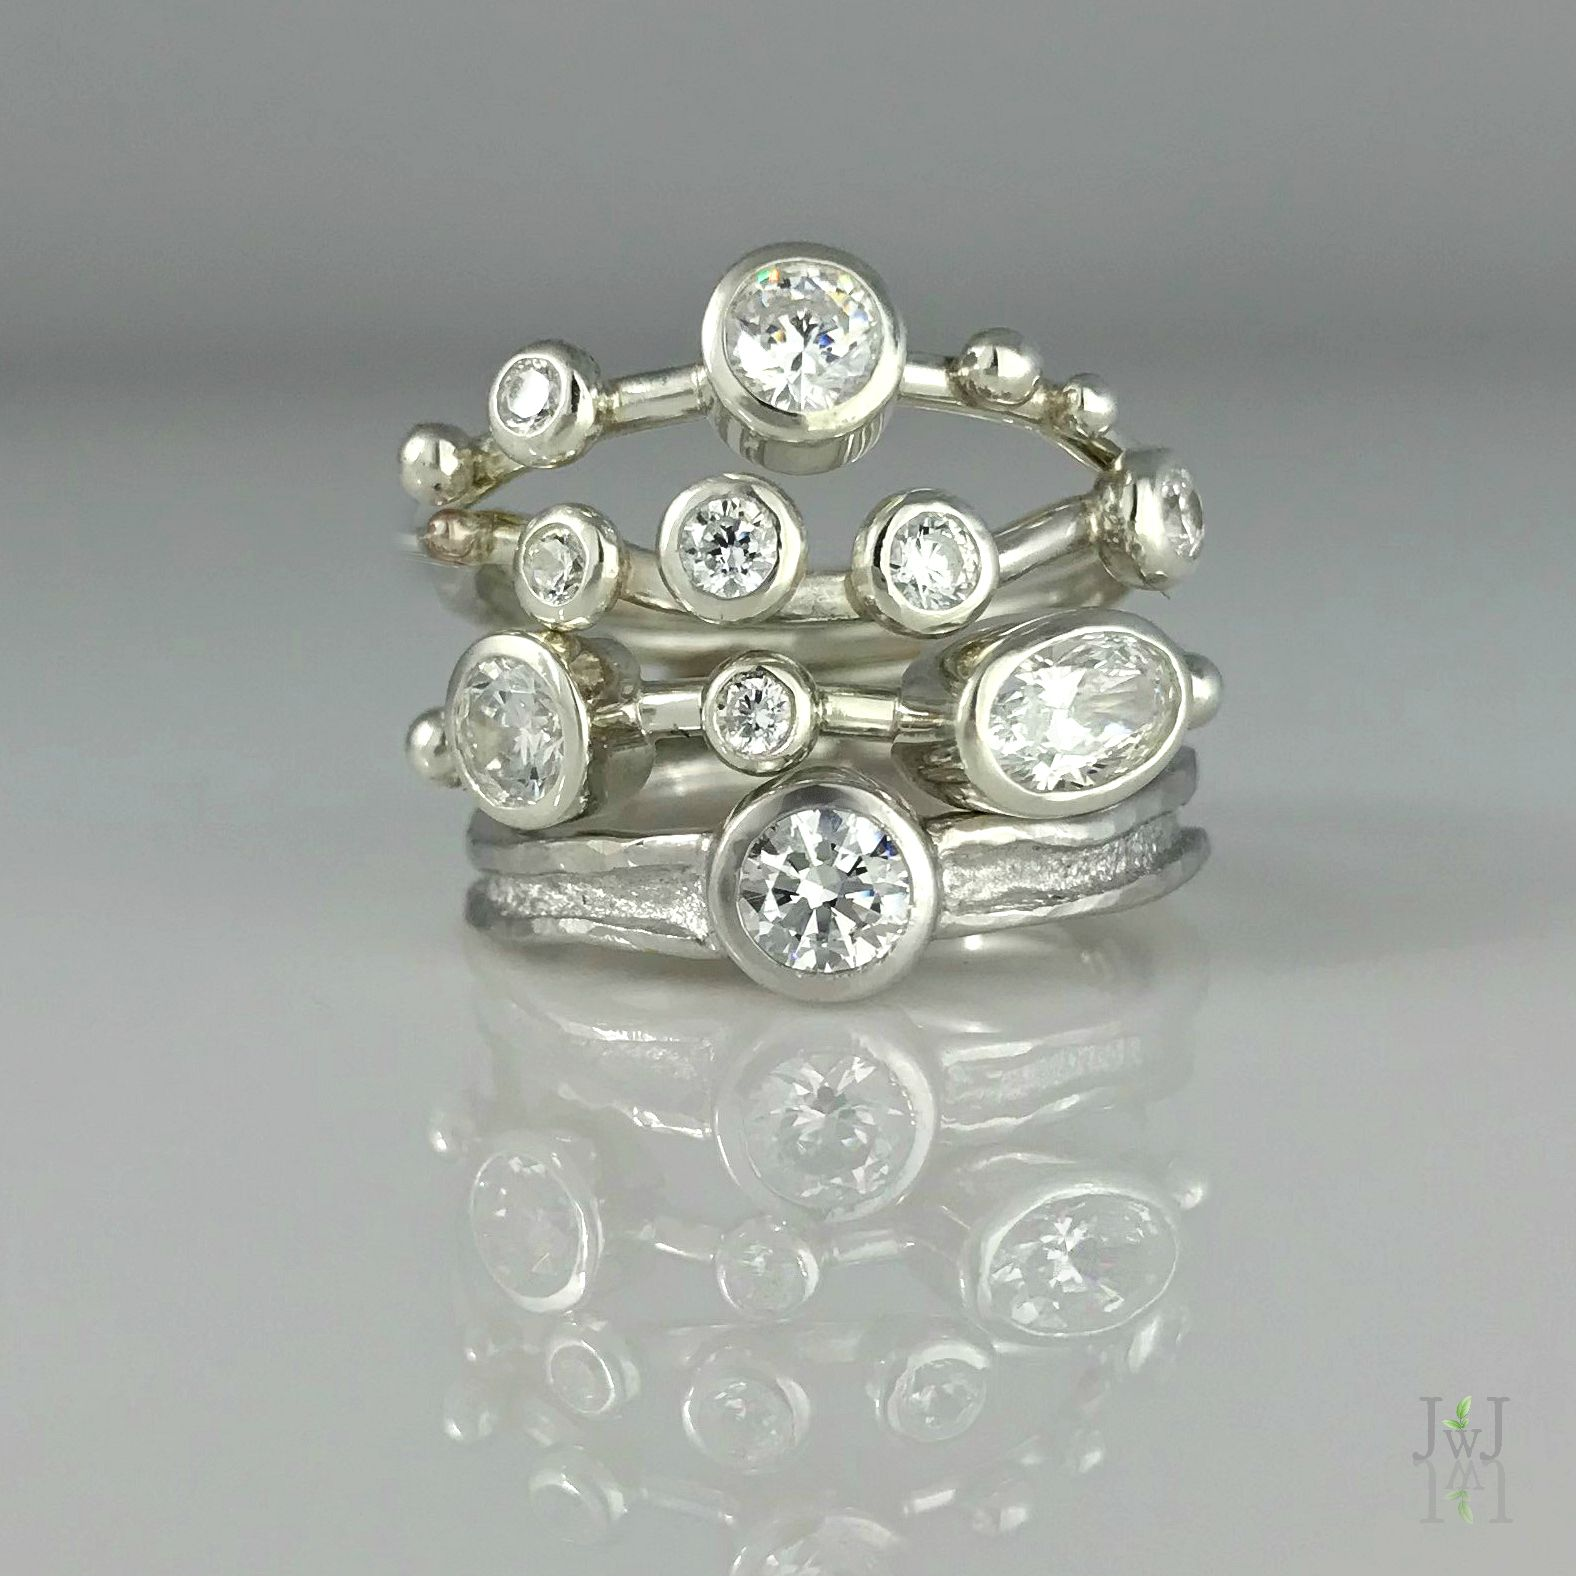 Better Than Diamond >> Q Whats Better Than Diamonds Stacked Upon Diamonds A When They Re